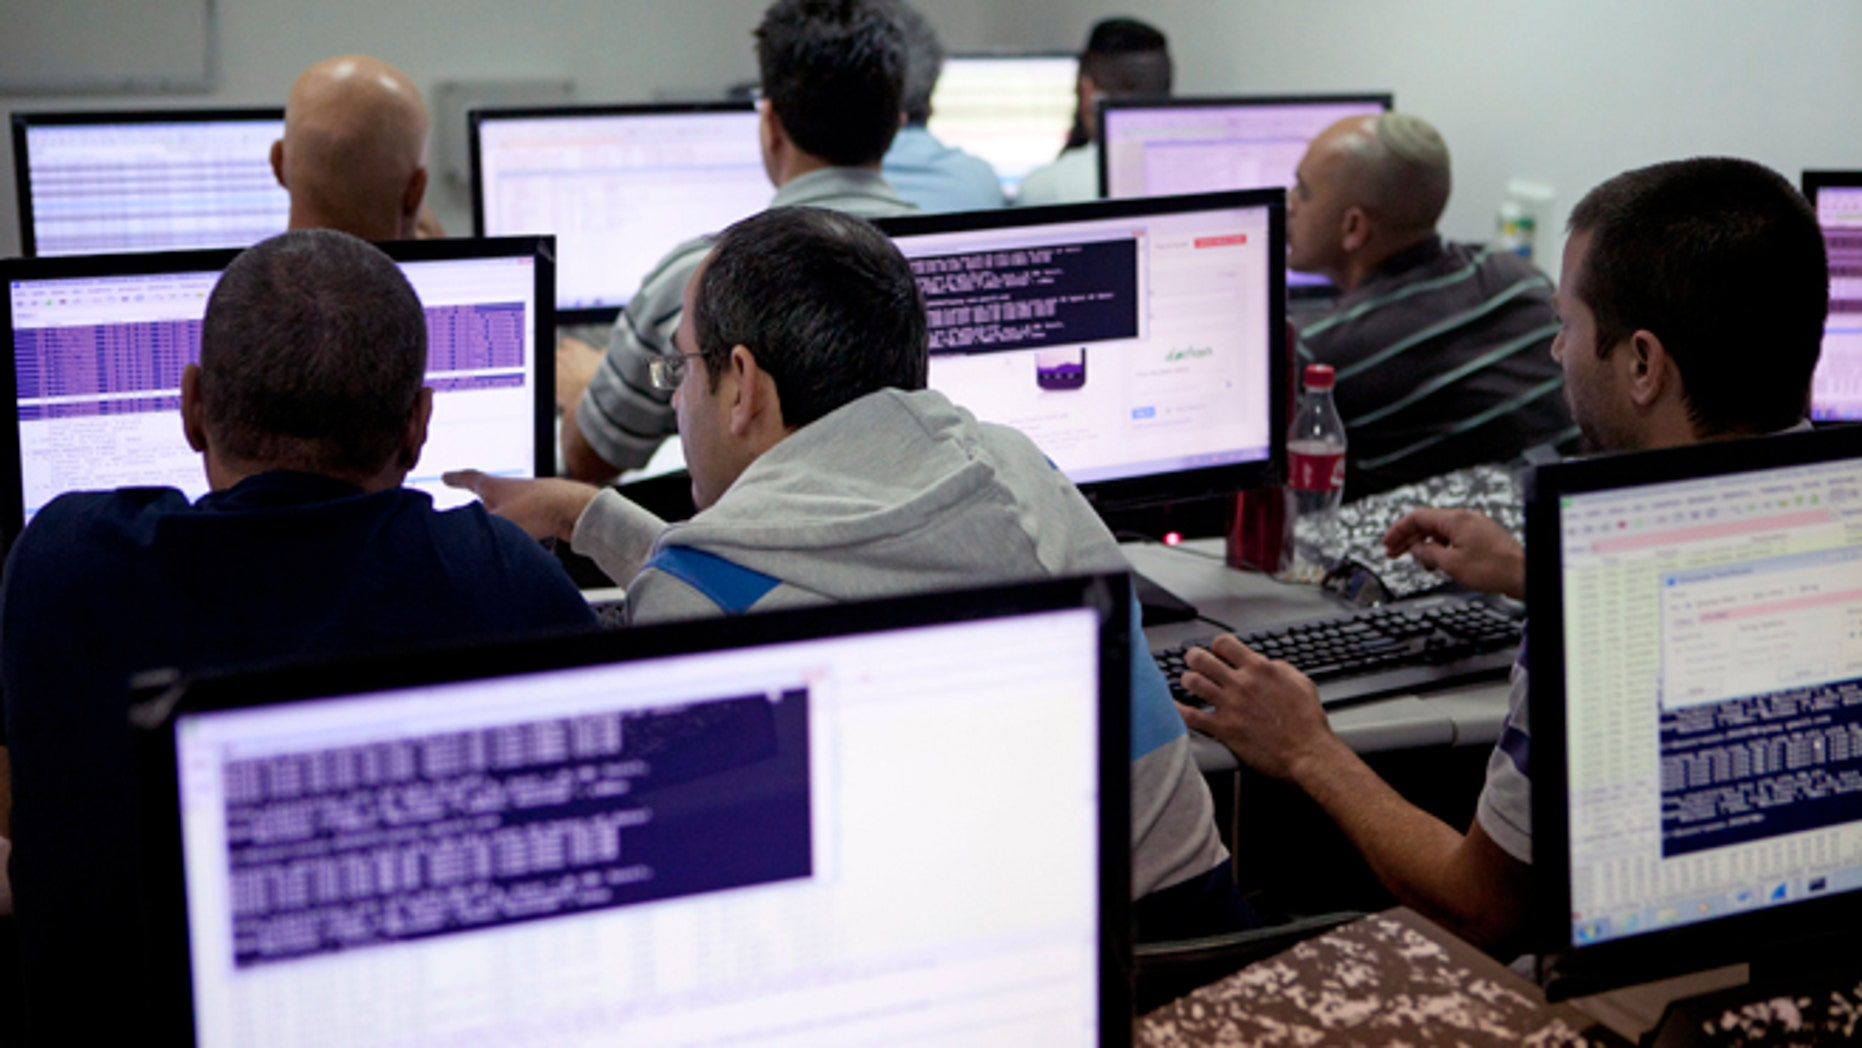 Oct. 20, 2013: Israelis work on computers at the 'CyberGym' school in the coastal city of Hadera. When Israel's military chief delivered a high-profile speech this month outlining the greatest threats his country will face in the future, he listed computer sabotage as a top concern, warning a sophisticated cyber attack could one day bring the nation to a standstill.